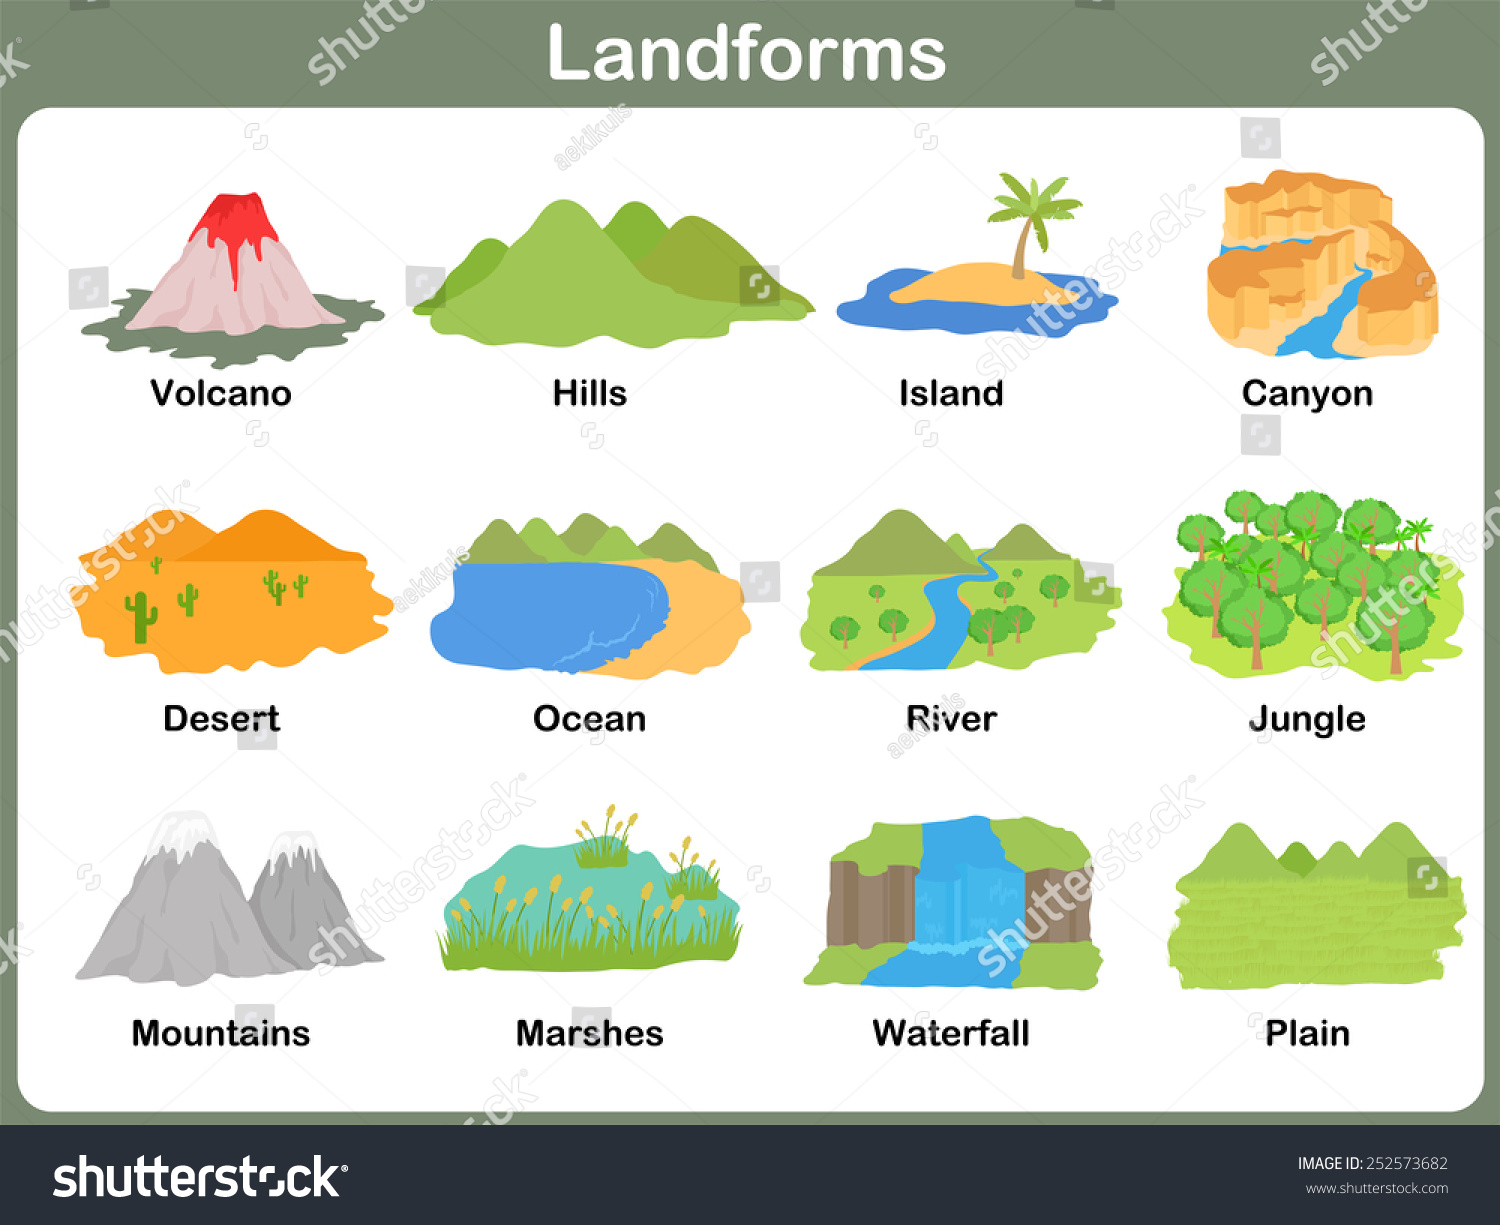 Leaning Landforms Kids Worksheet Stock Vector